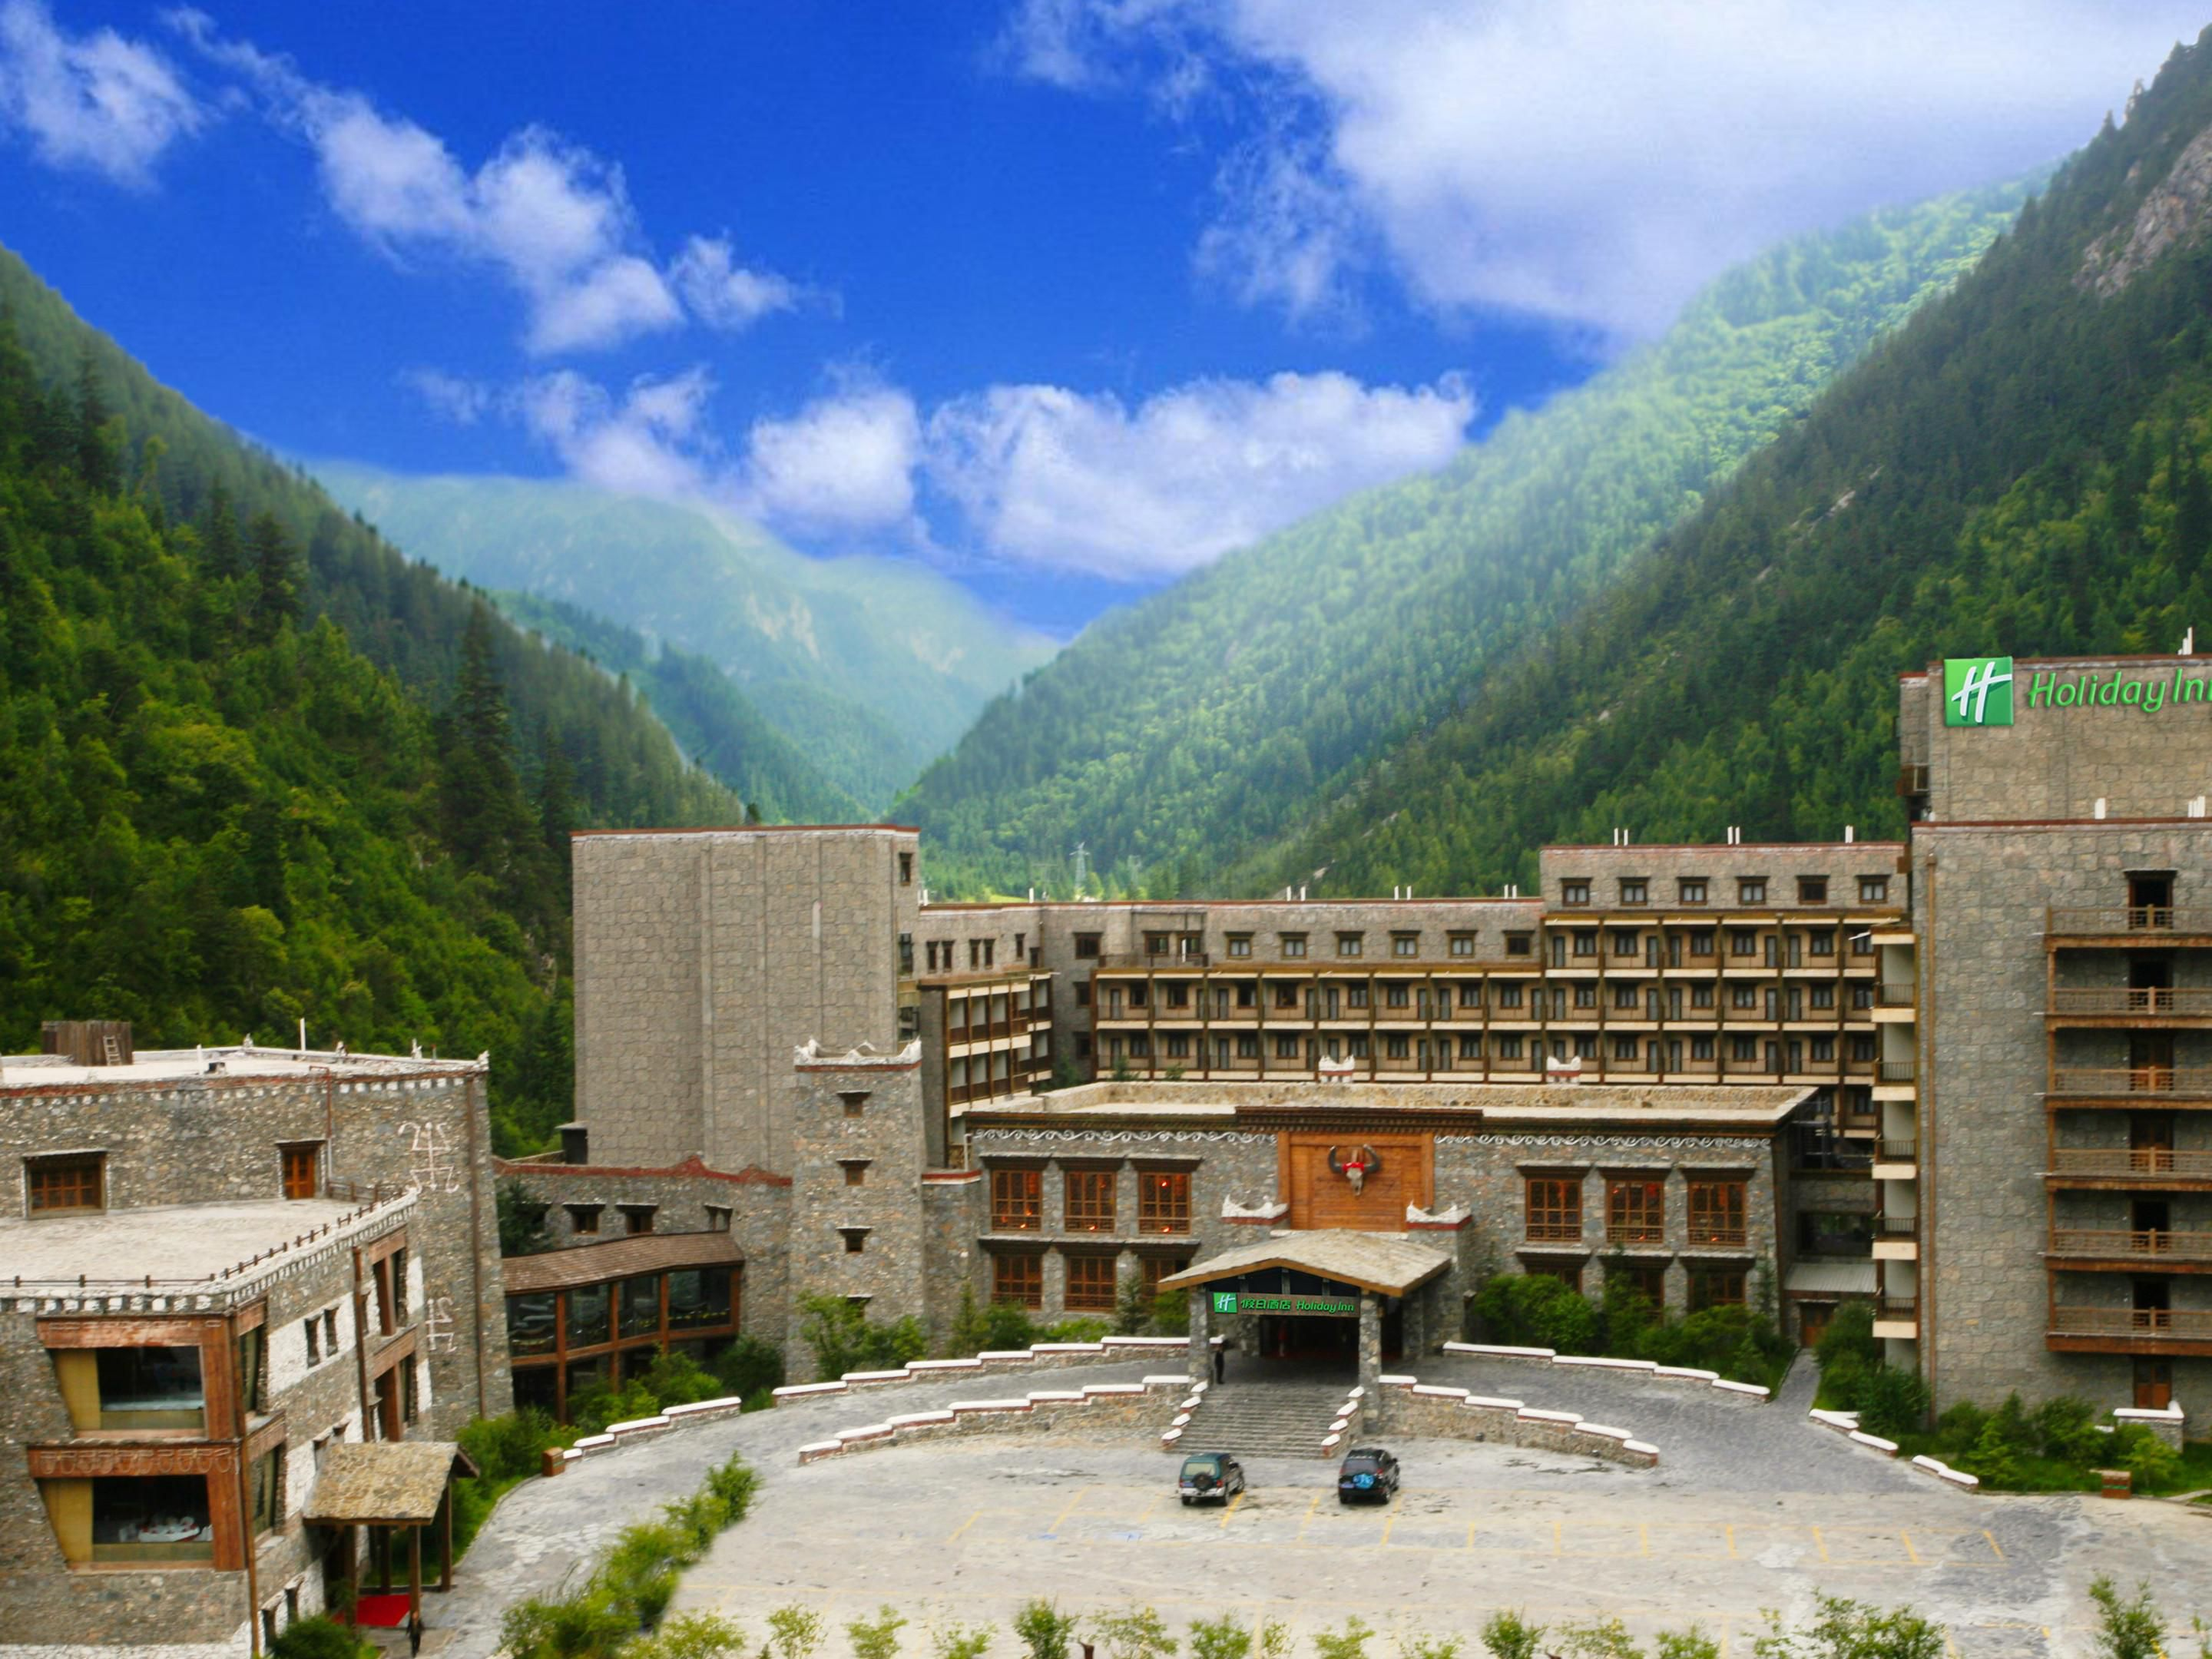 holiday inn jiuzhai jarpo hotel by ihg rh ihg com